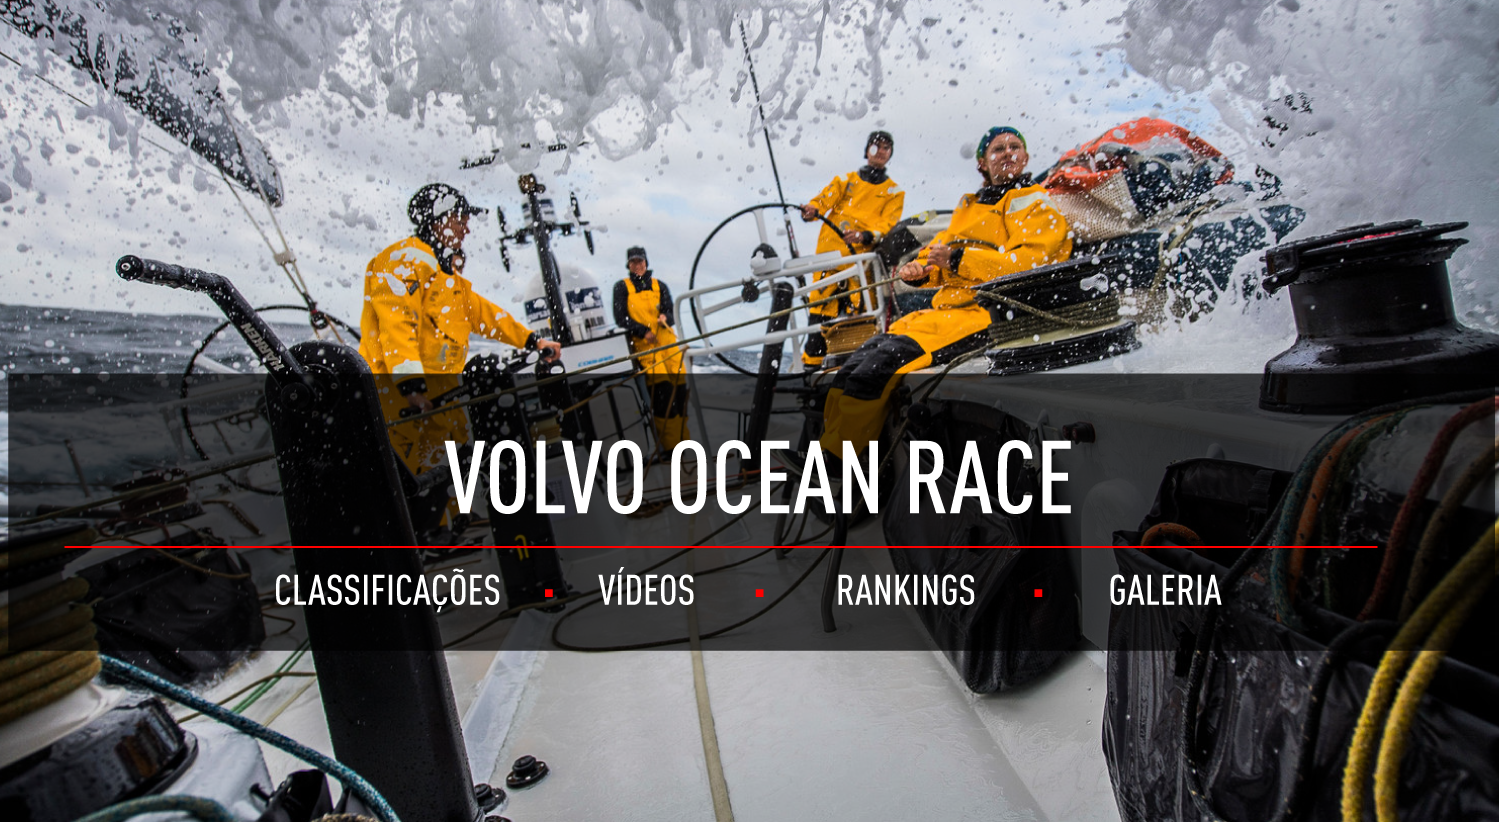 Volvo Ocean Race: Siga a regata mais dura do mundo